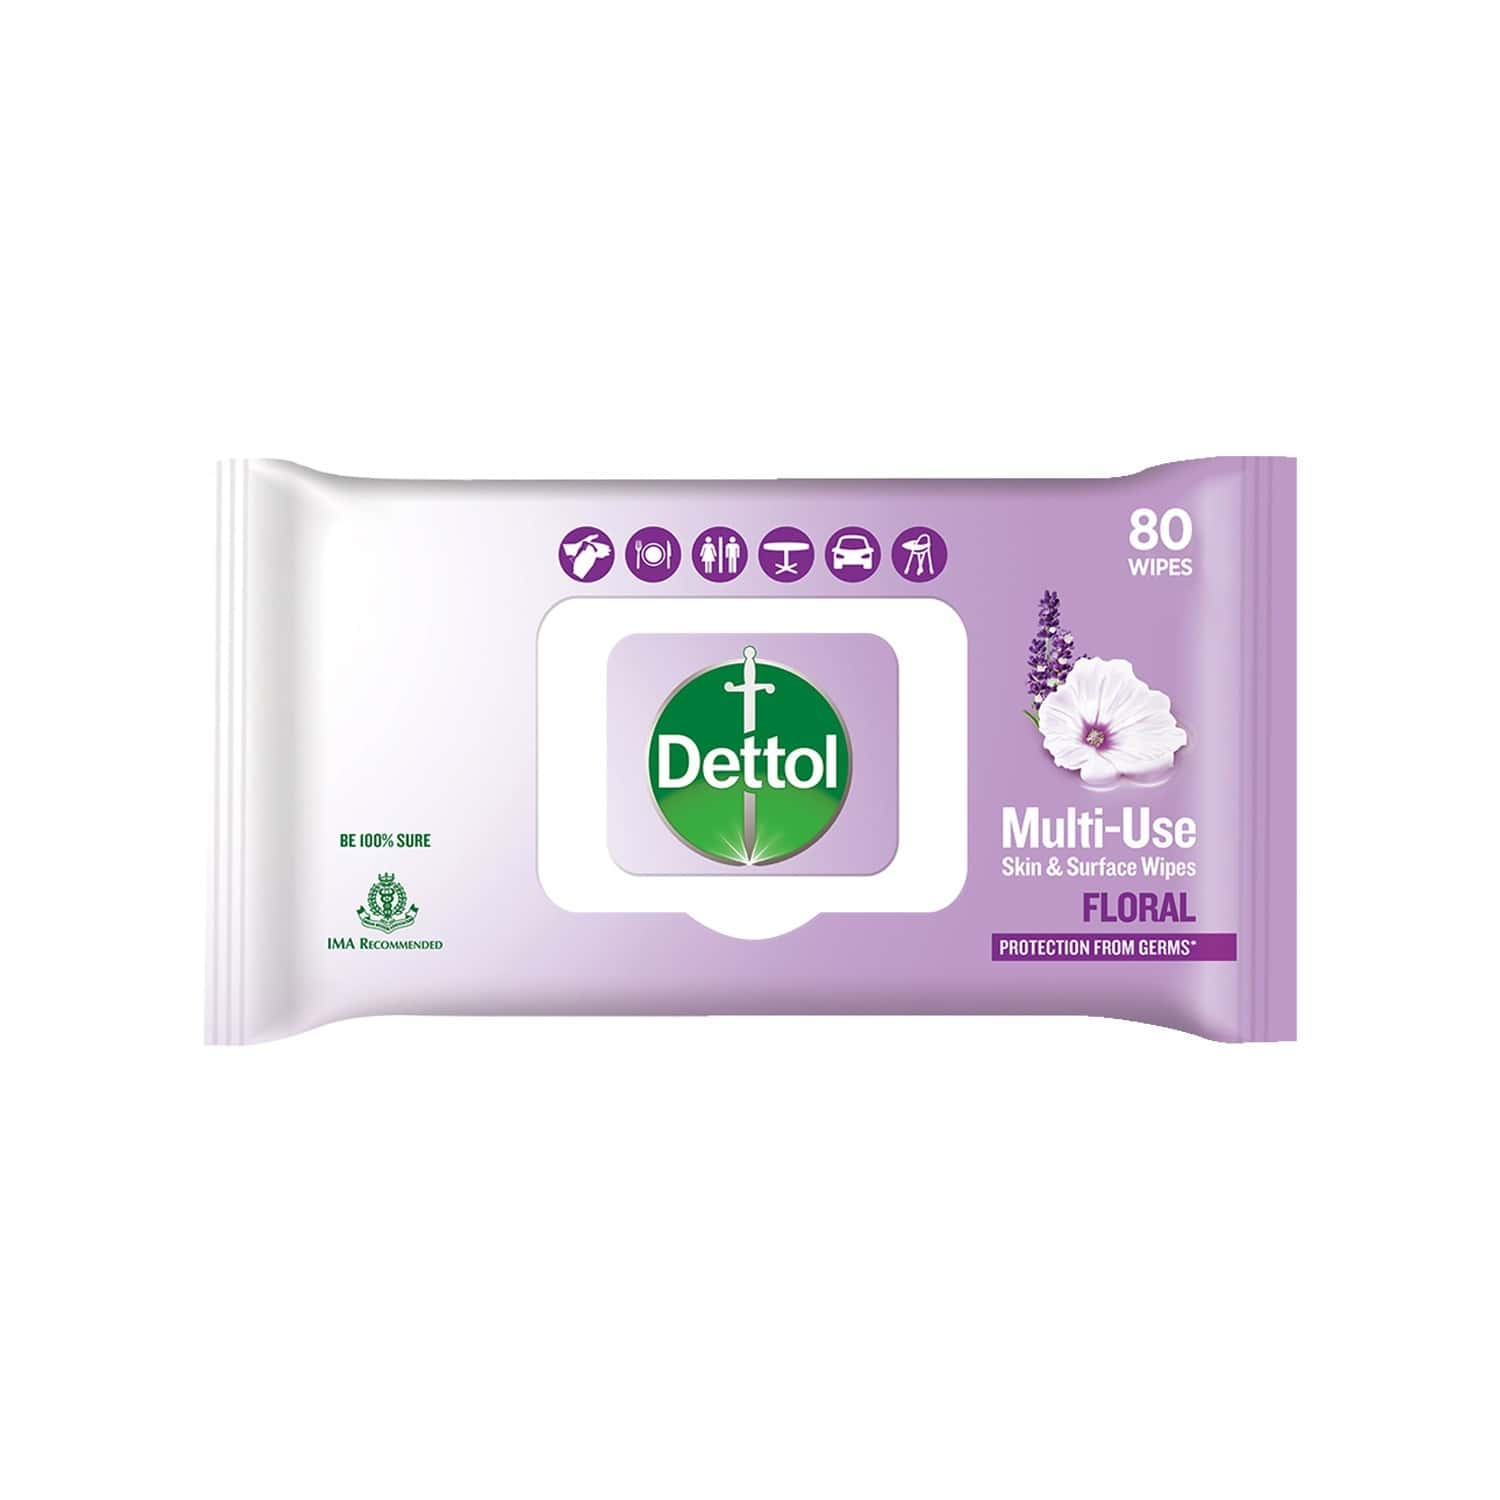 Dettol Disinfectant Skin & Surface Wipes, Floral, Safe On Skin, Ideal To Clean Multiple Surfaces, Resealable Lock - Lid - 80 Count